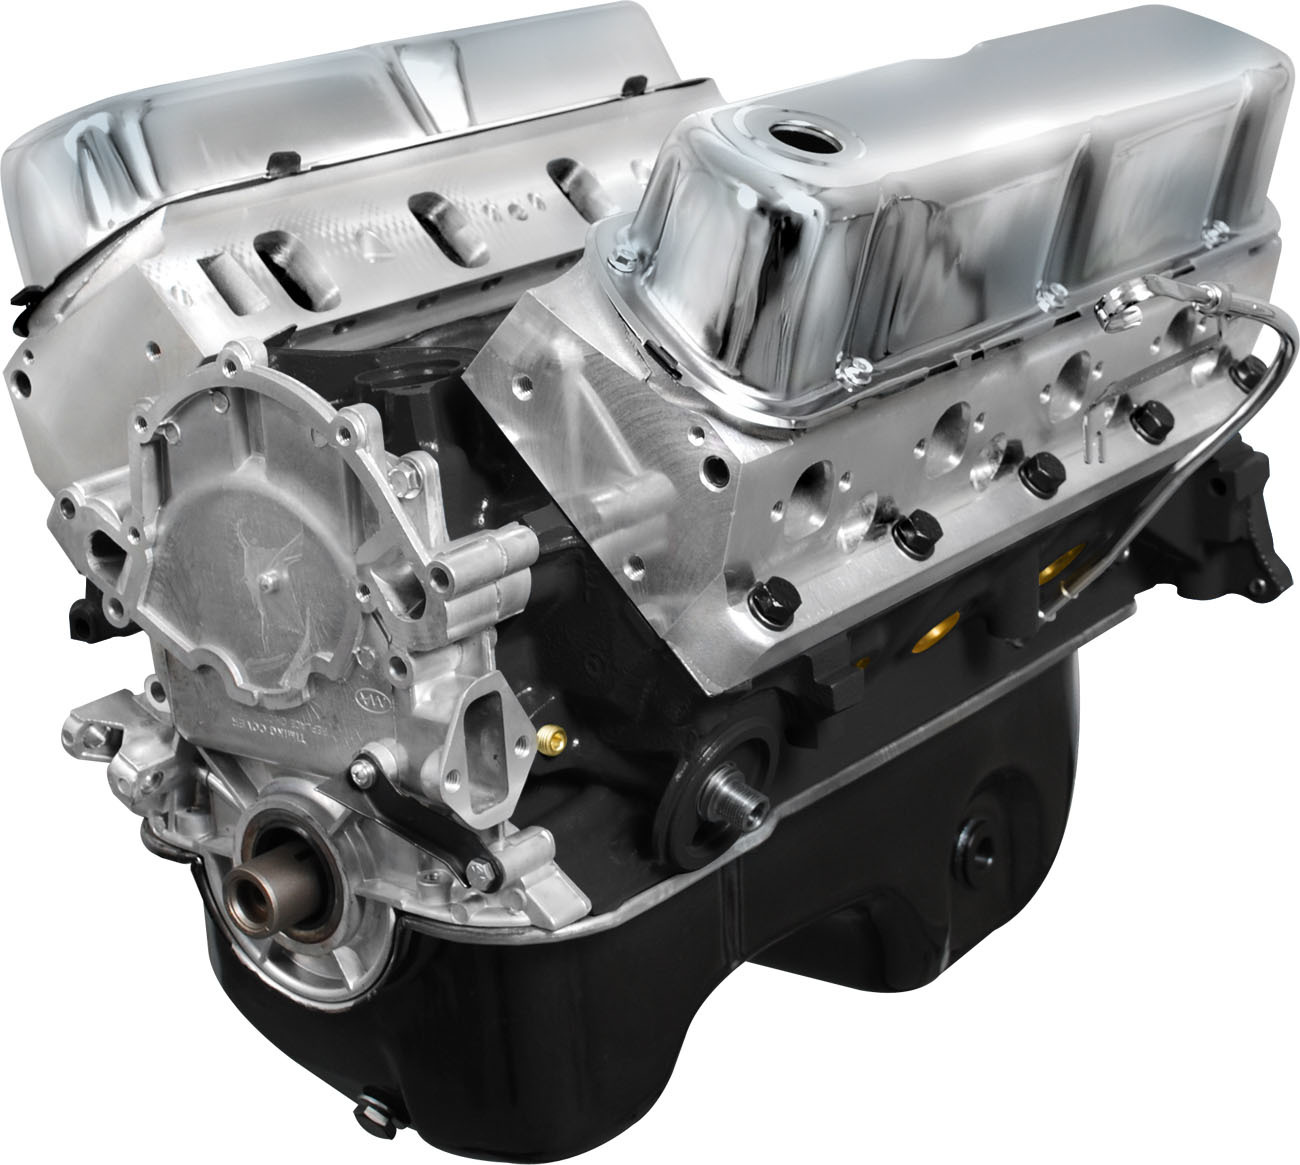 Crate Engine - SBF 347 400HP Base Model